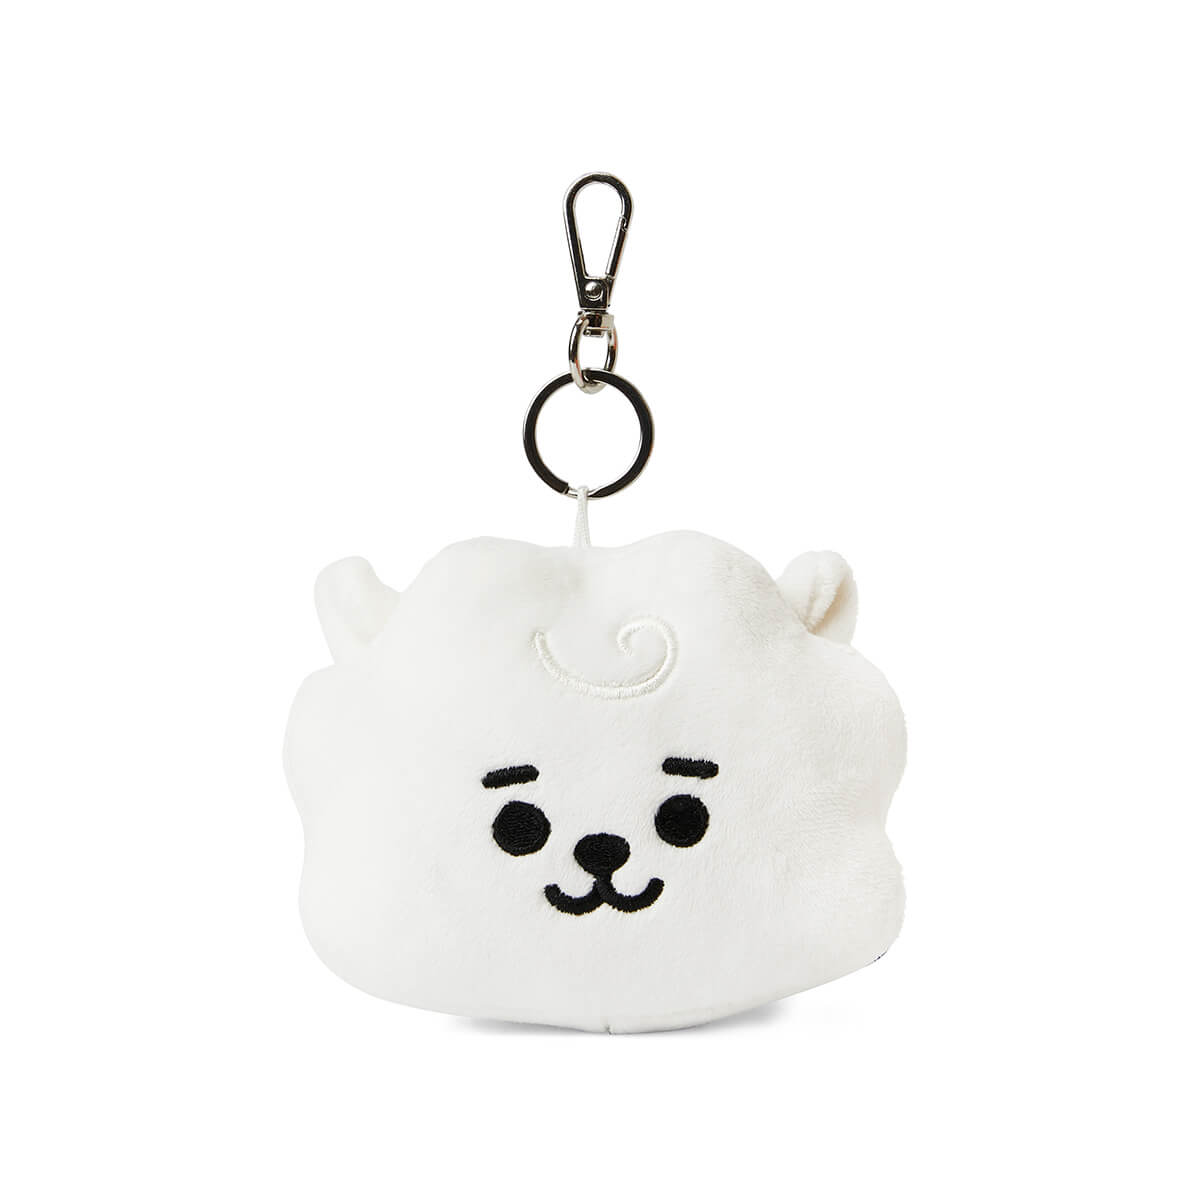 BT21 RJ BABY Lighting Bag Charm Doll